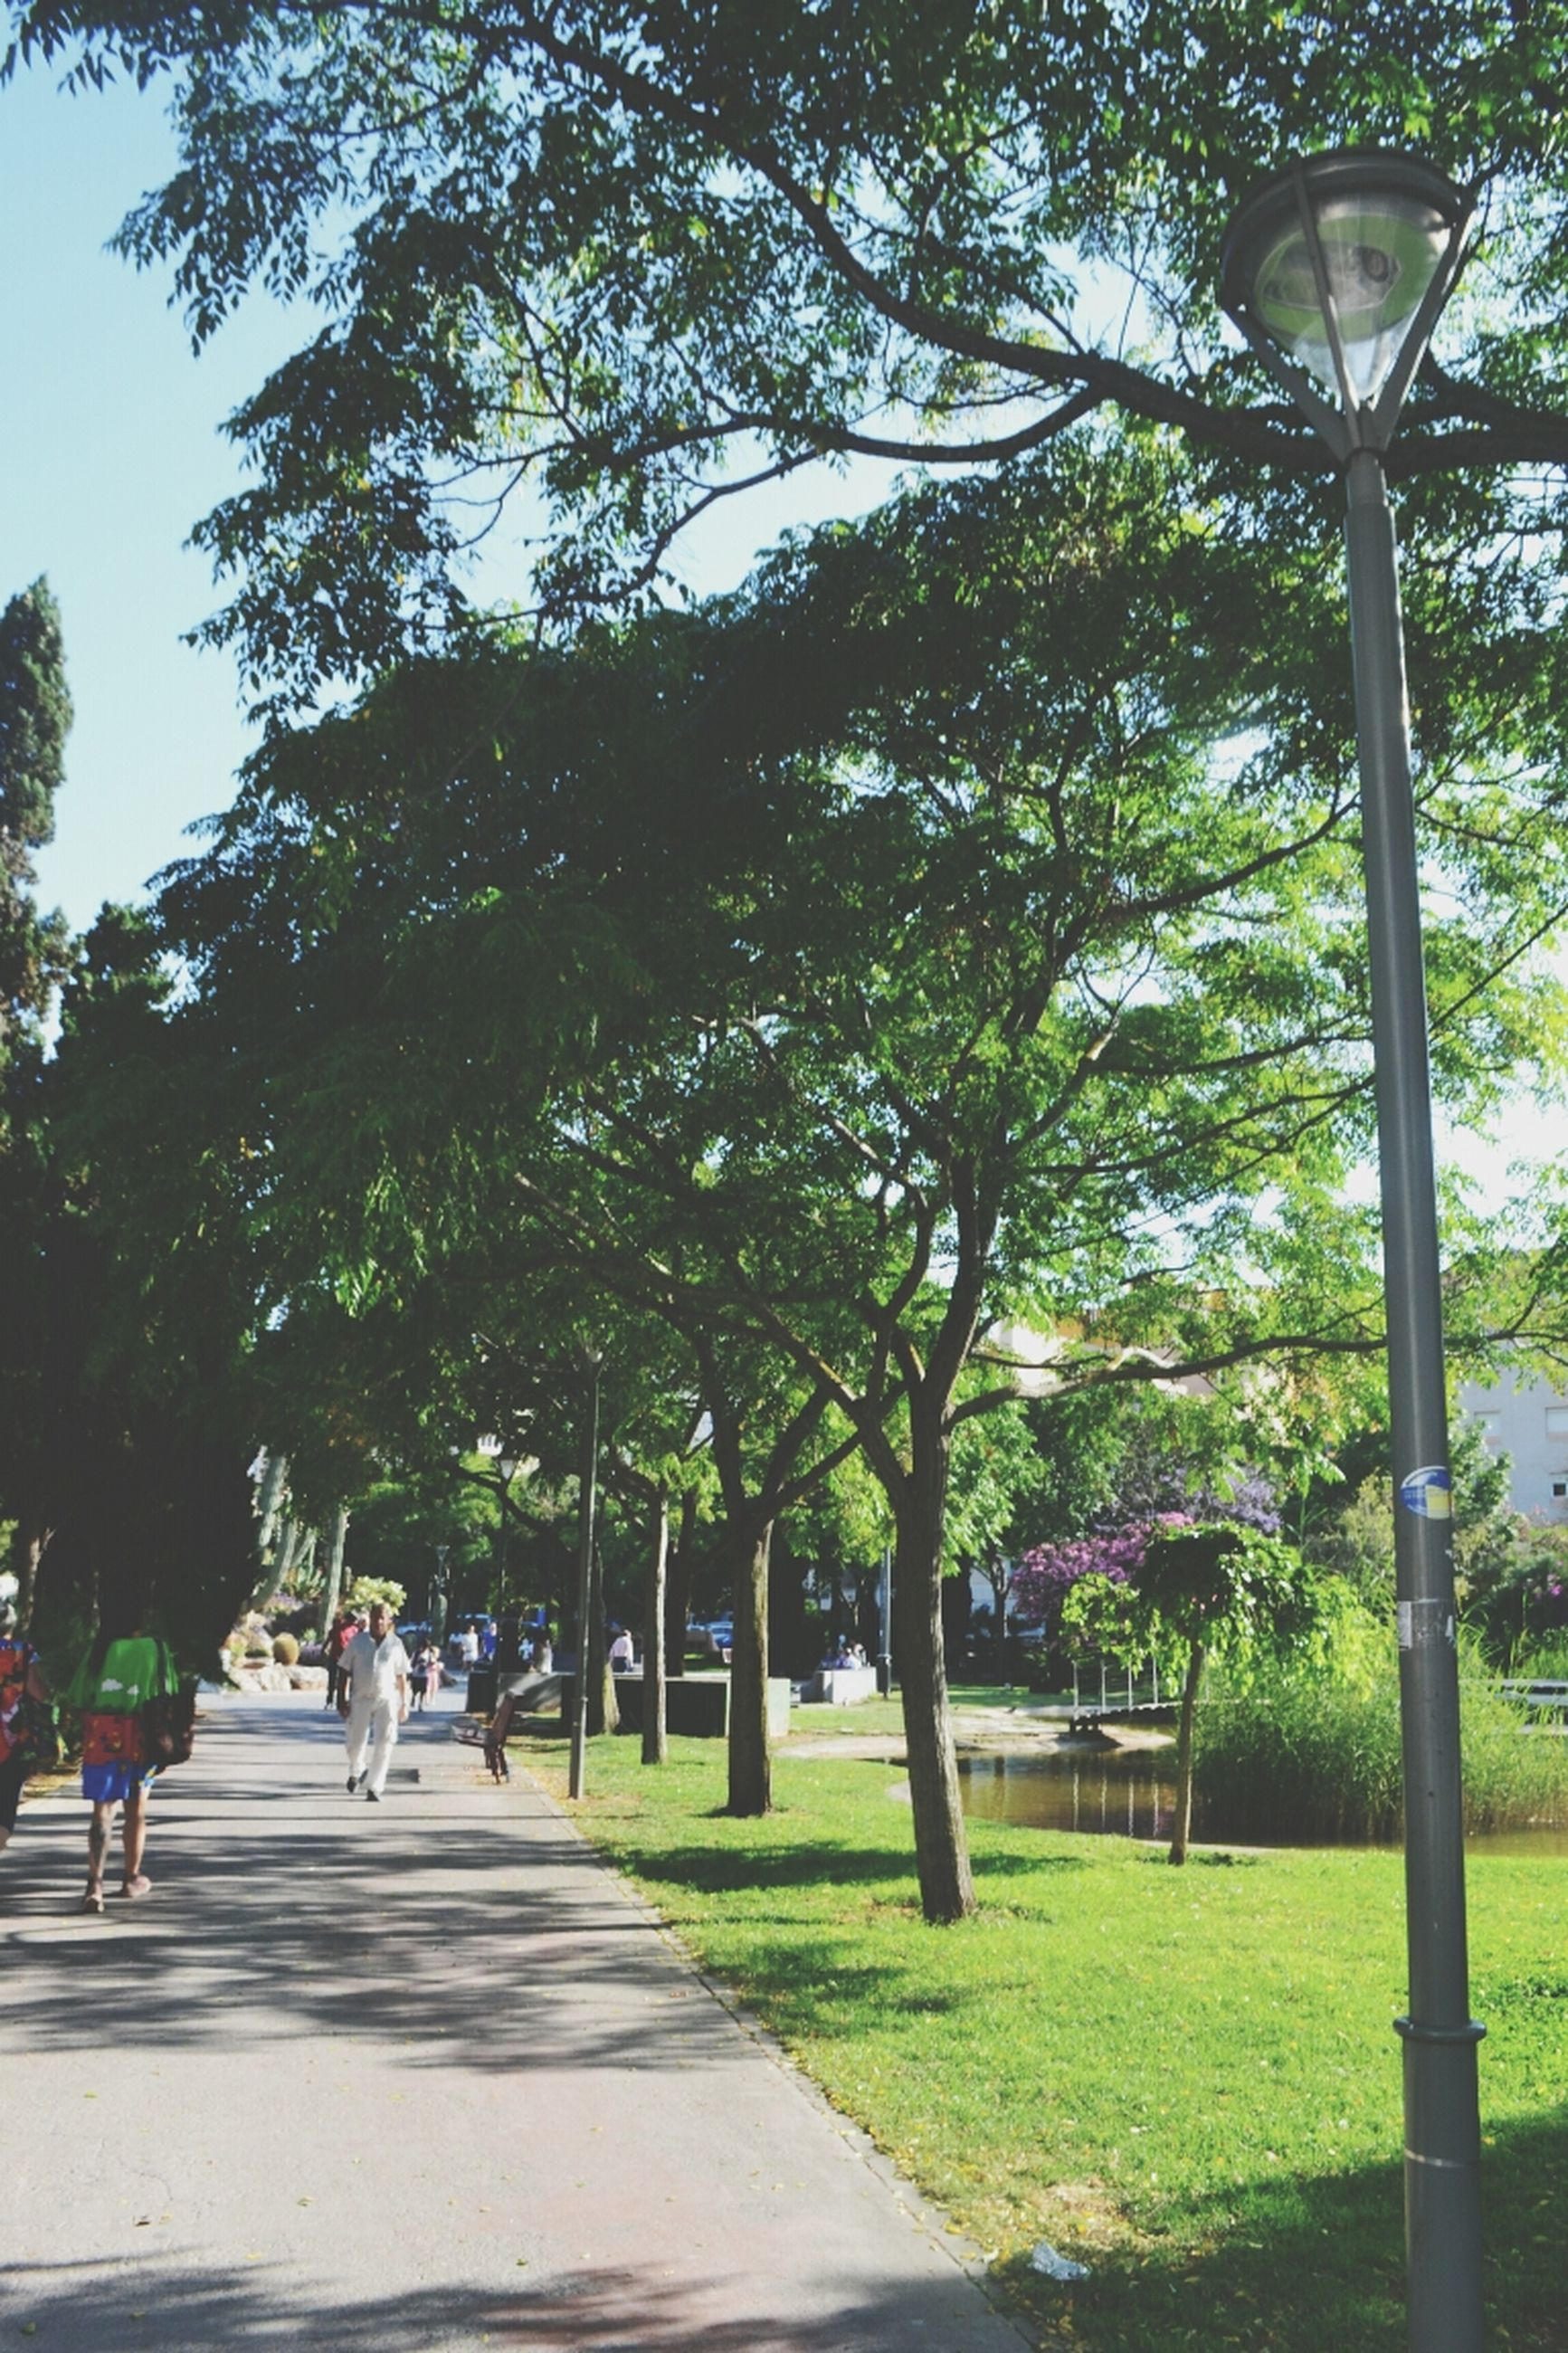 tree, street light, park - man made space, green color, grass, lighting equipment, growth, footpath, incidental people, nature, sky, sunlight, the way forward, park, outdoors, leisure activity, branch, day, shadow